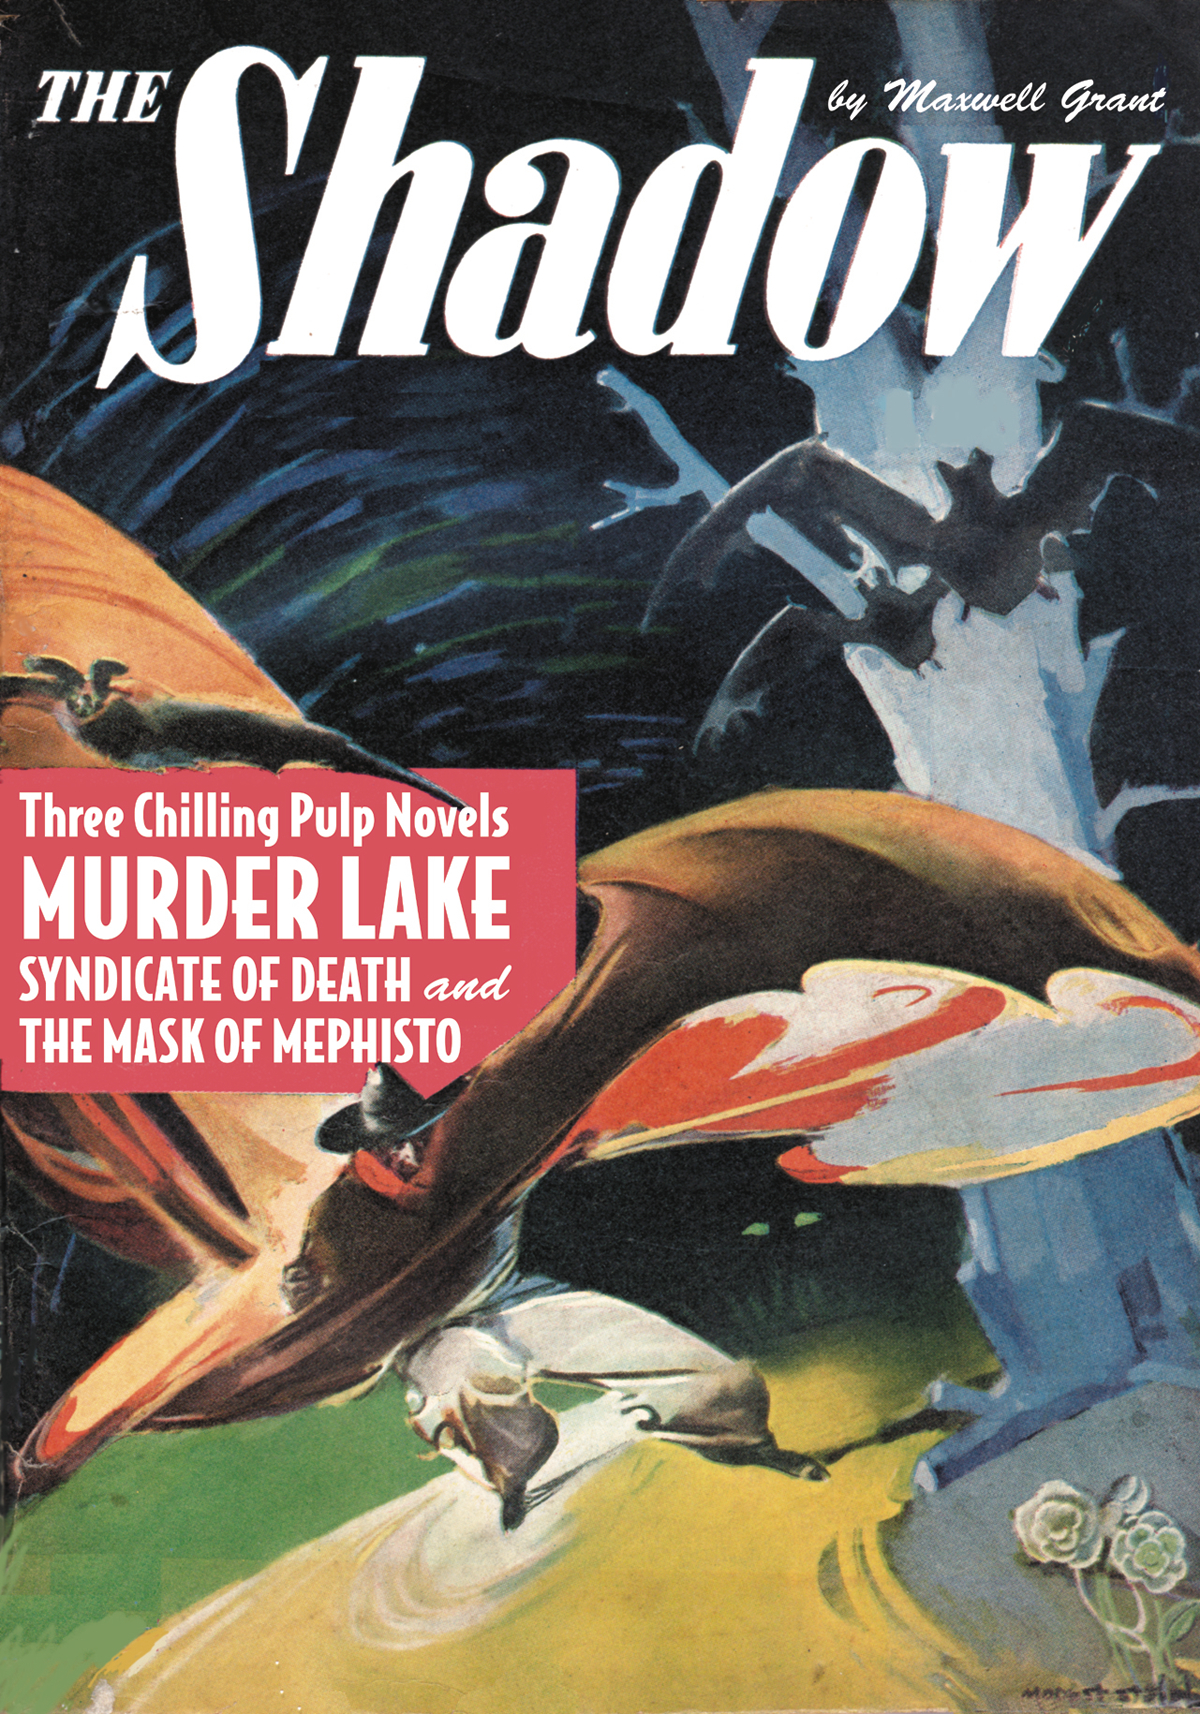 SHADOW DOUBLE NOVEL VOL 140 MURDER LAKE SYNDICATE OF DEATH (